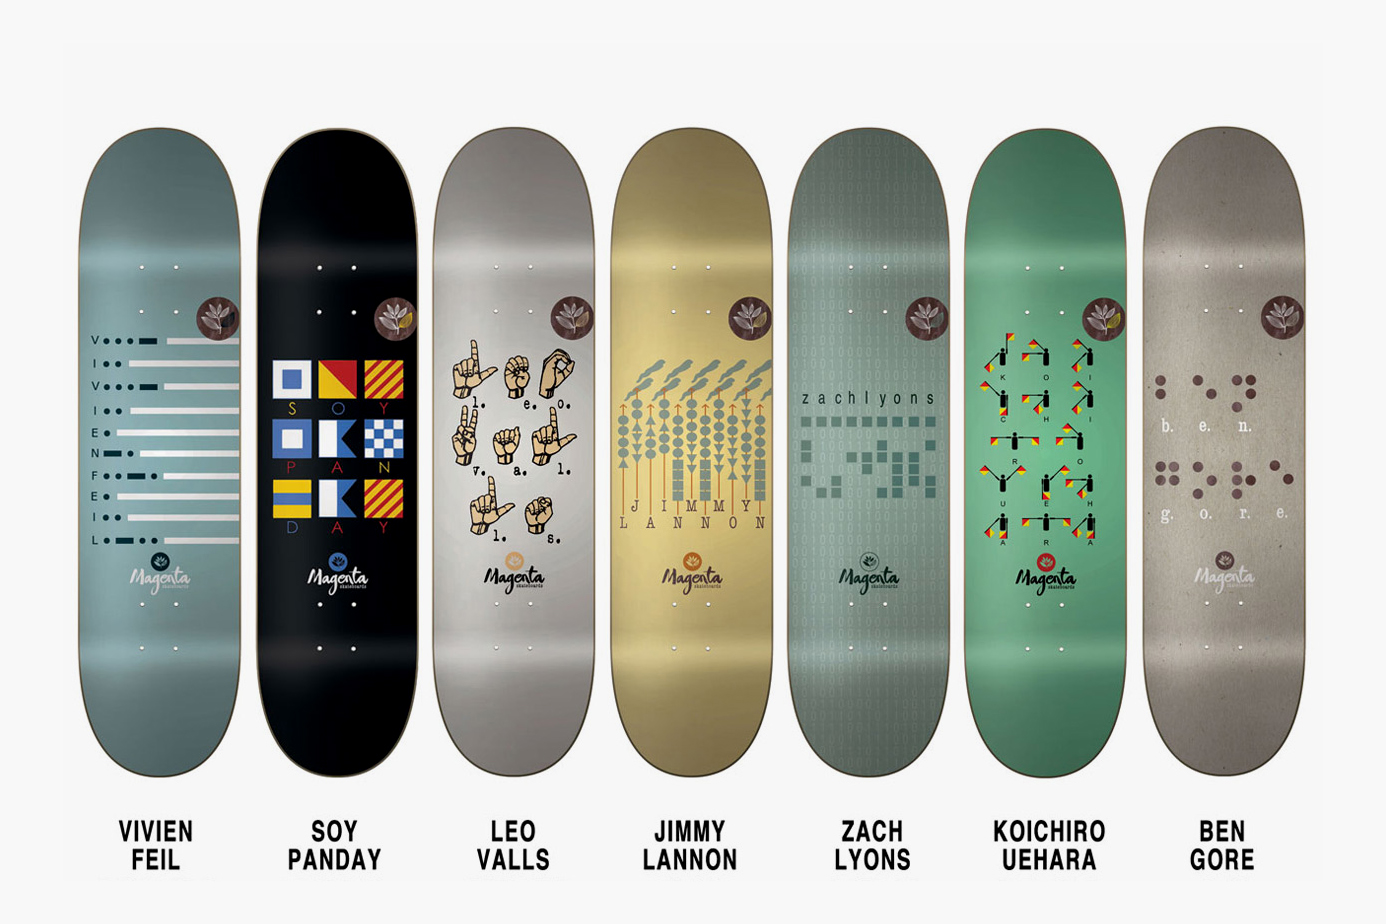 Best Skateboard nds: 25 Independent Names to Know Right Now on stupid skateboard designs, old skateboard designs, weird skateboard designs, beach skateboard designs, homemade finger pulls, cool skateboard designs, top skateboard designs, tumblr skateboard designs, best skateboard designs, diy skateboard designs, emo skateboard designs, girl skateboard designs, cartoon skateboard designs, homemade longboard, camoflauge skateboard designs, sexy skateboard designs, amazing skateboard designs, black skateboard designs, handmade skateboard designs, easy skateboard designs,